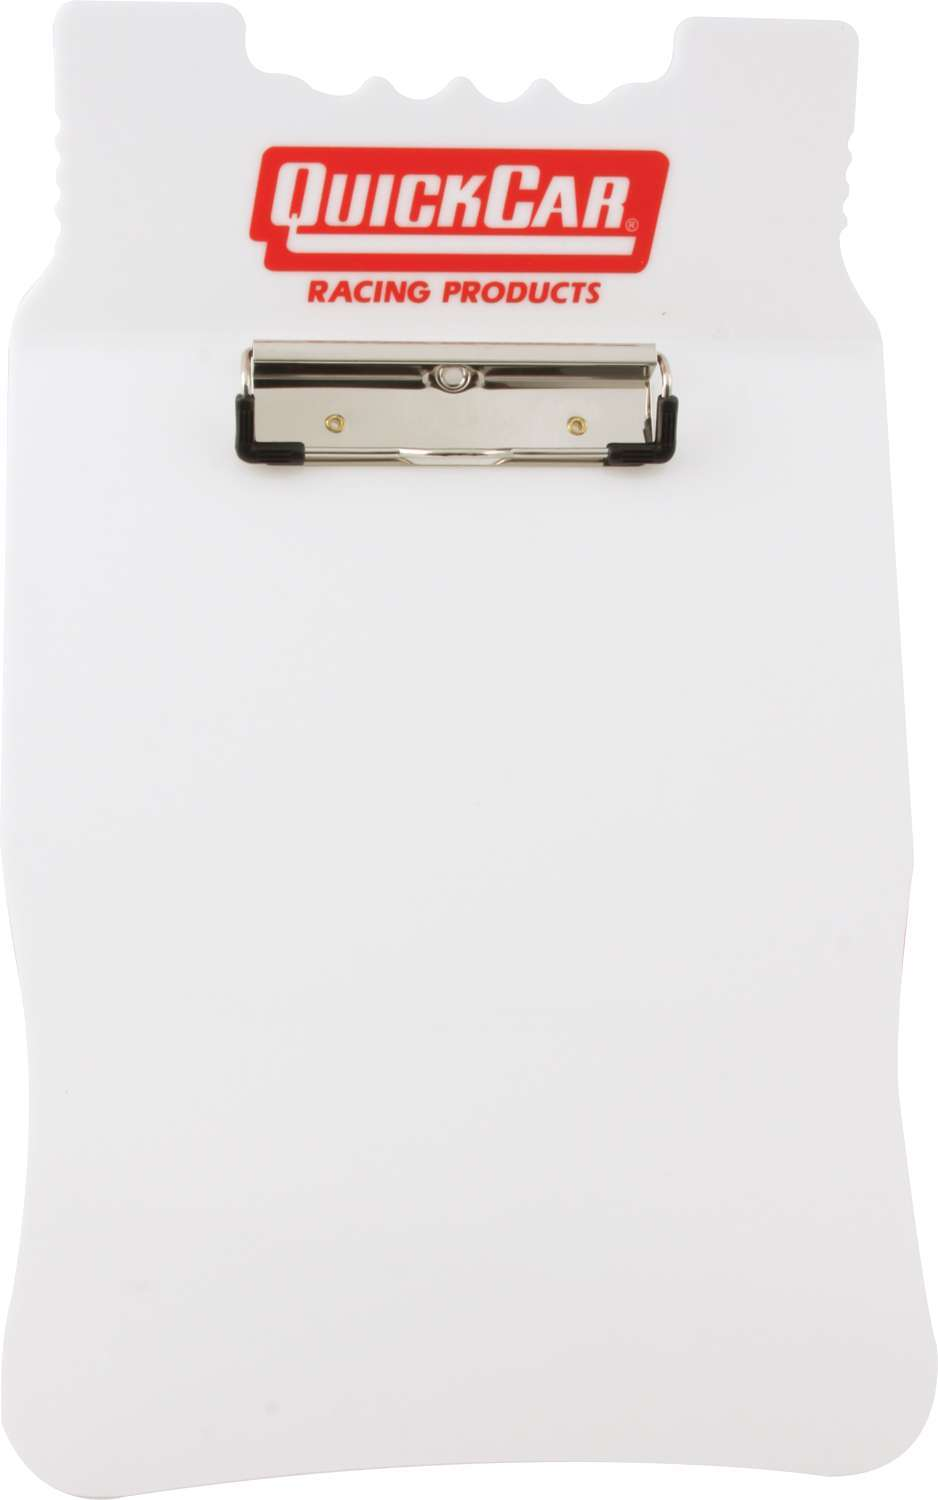 Quickcar Racing Products Acrylic Clipboard White